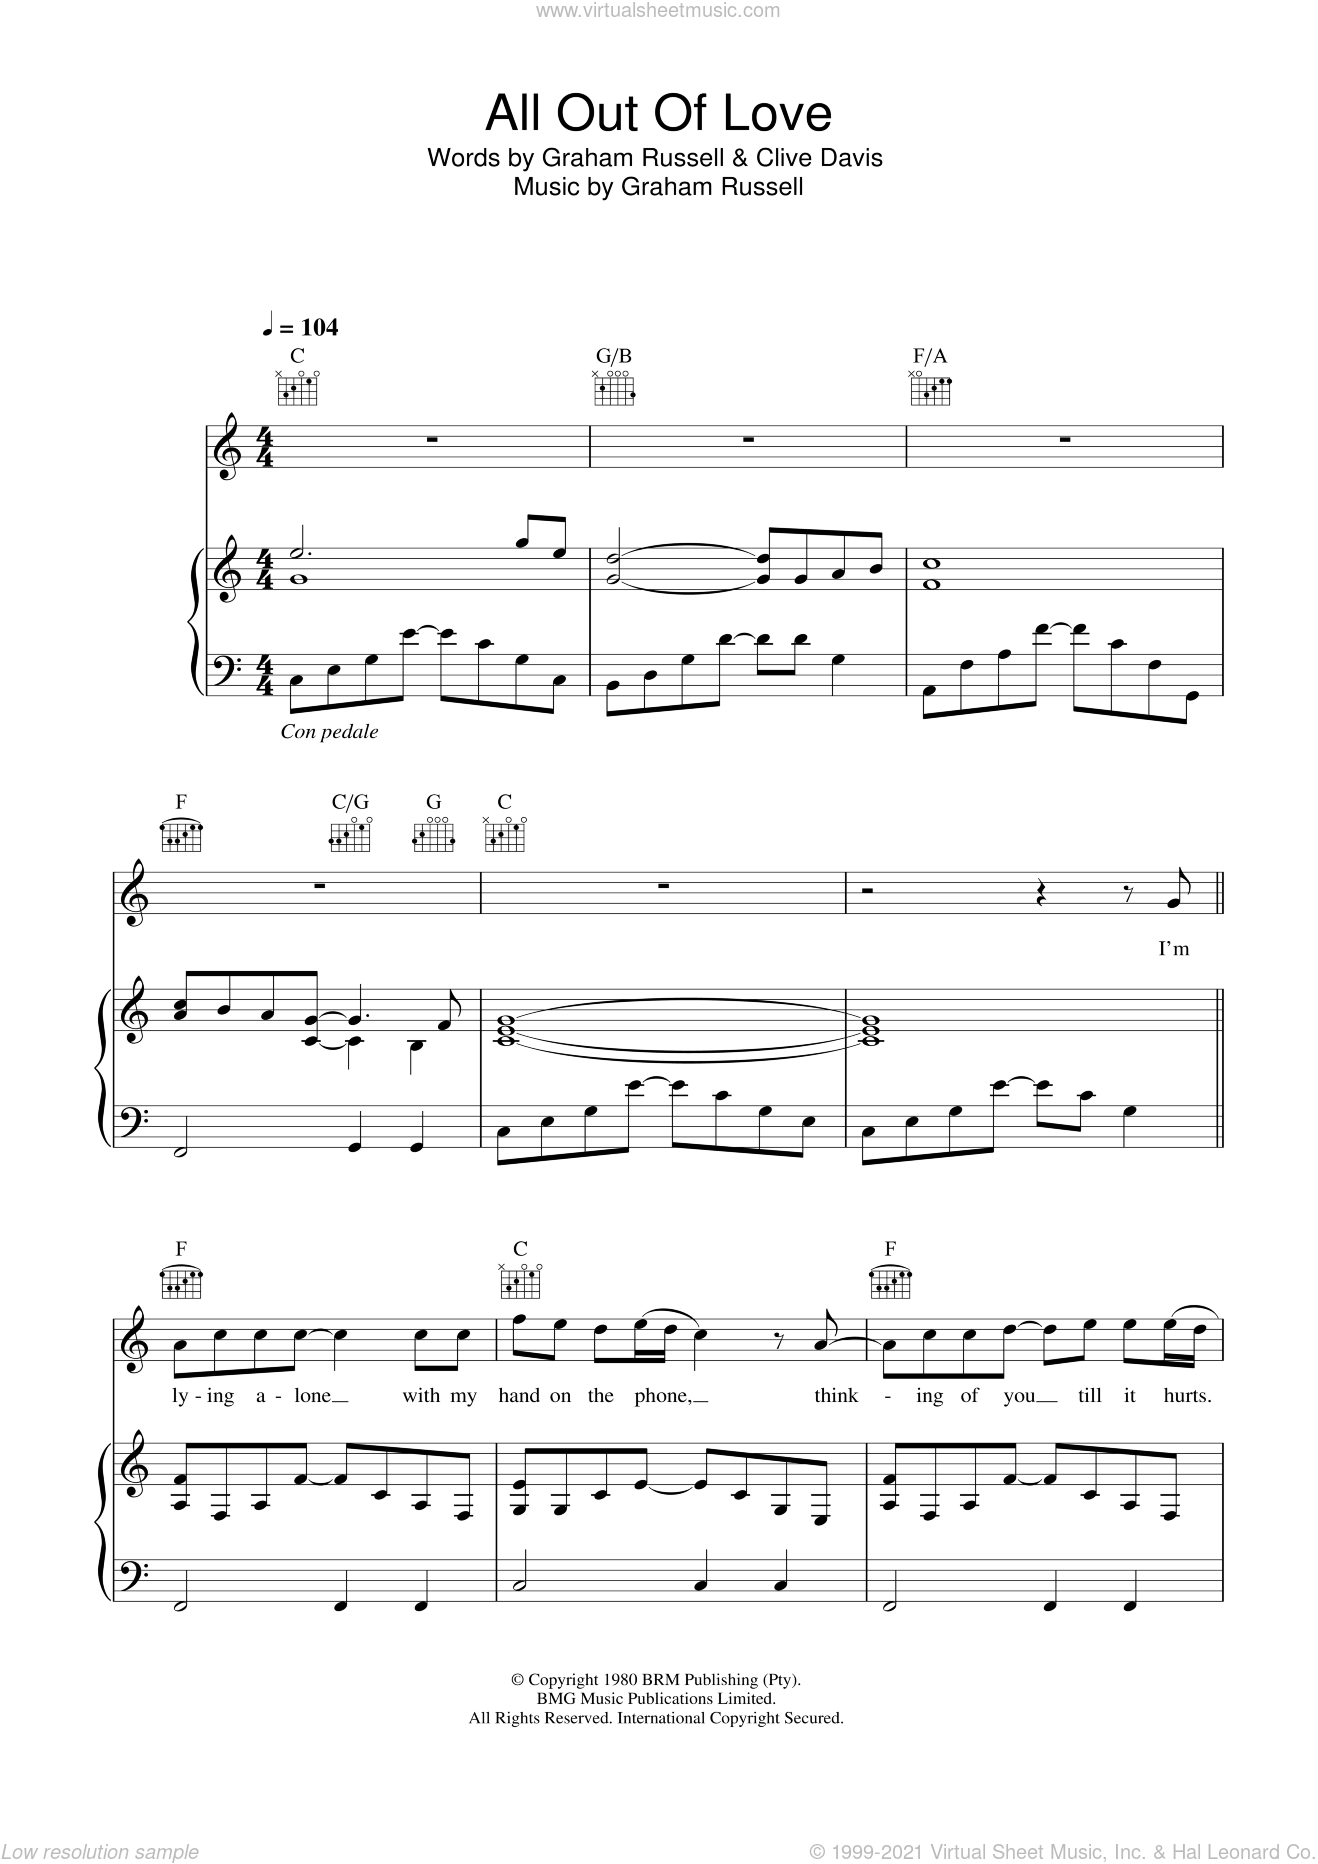 All Out Of Love sheet music for voice, piano or guitar by Graham Russell